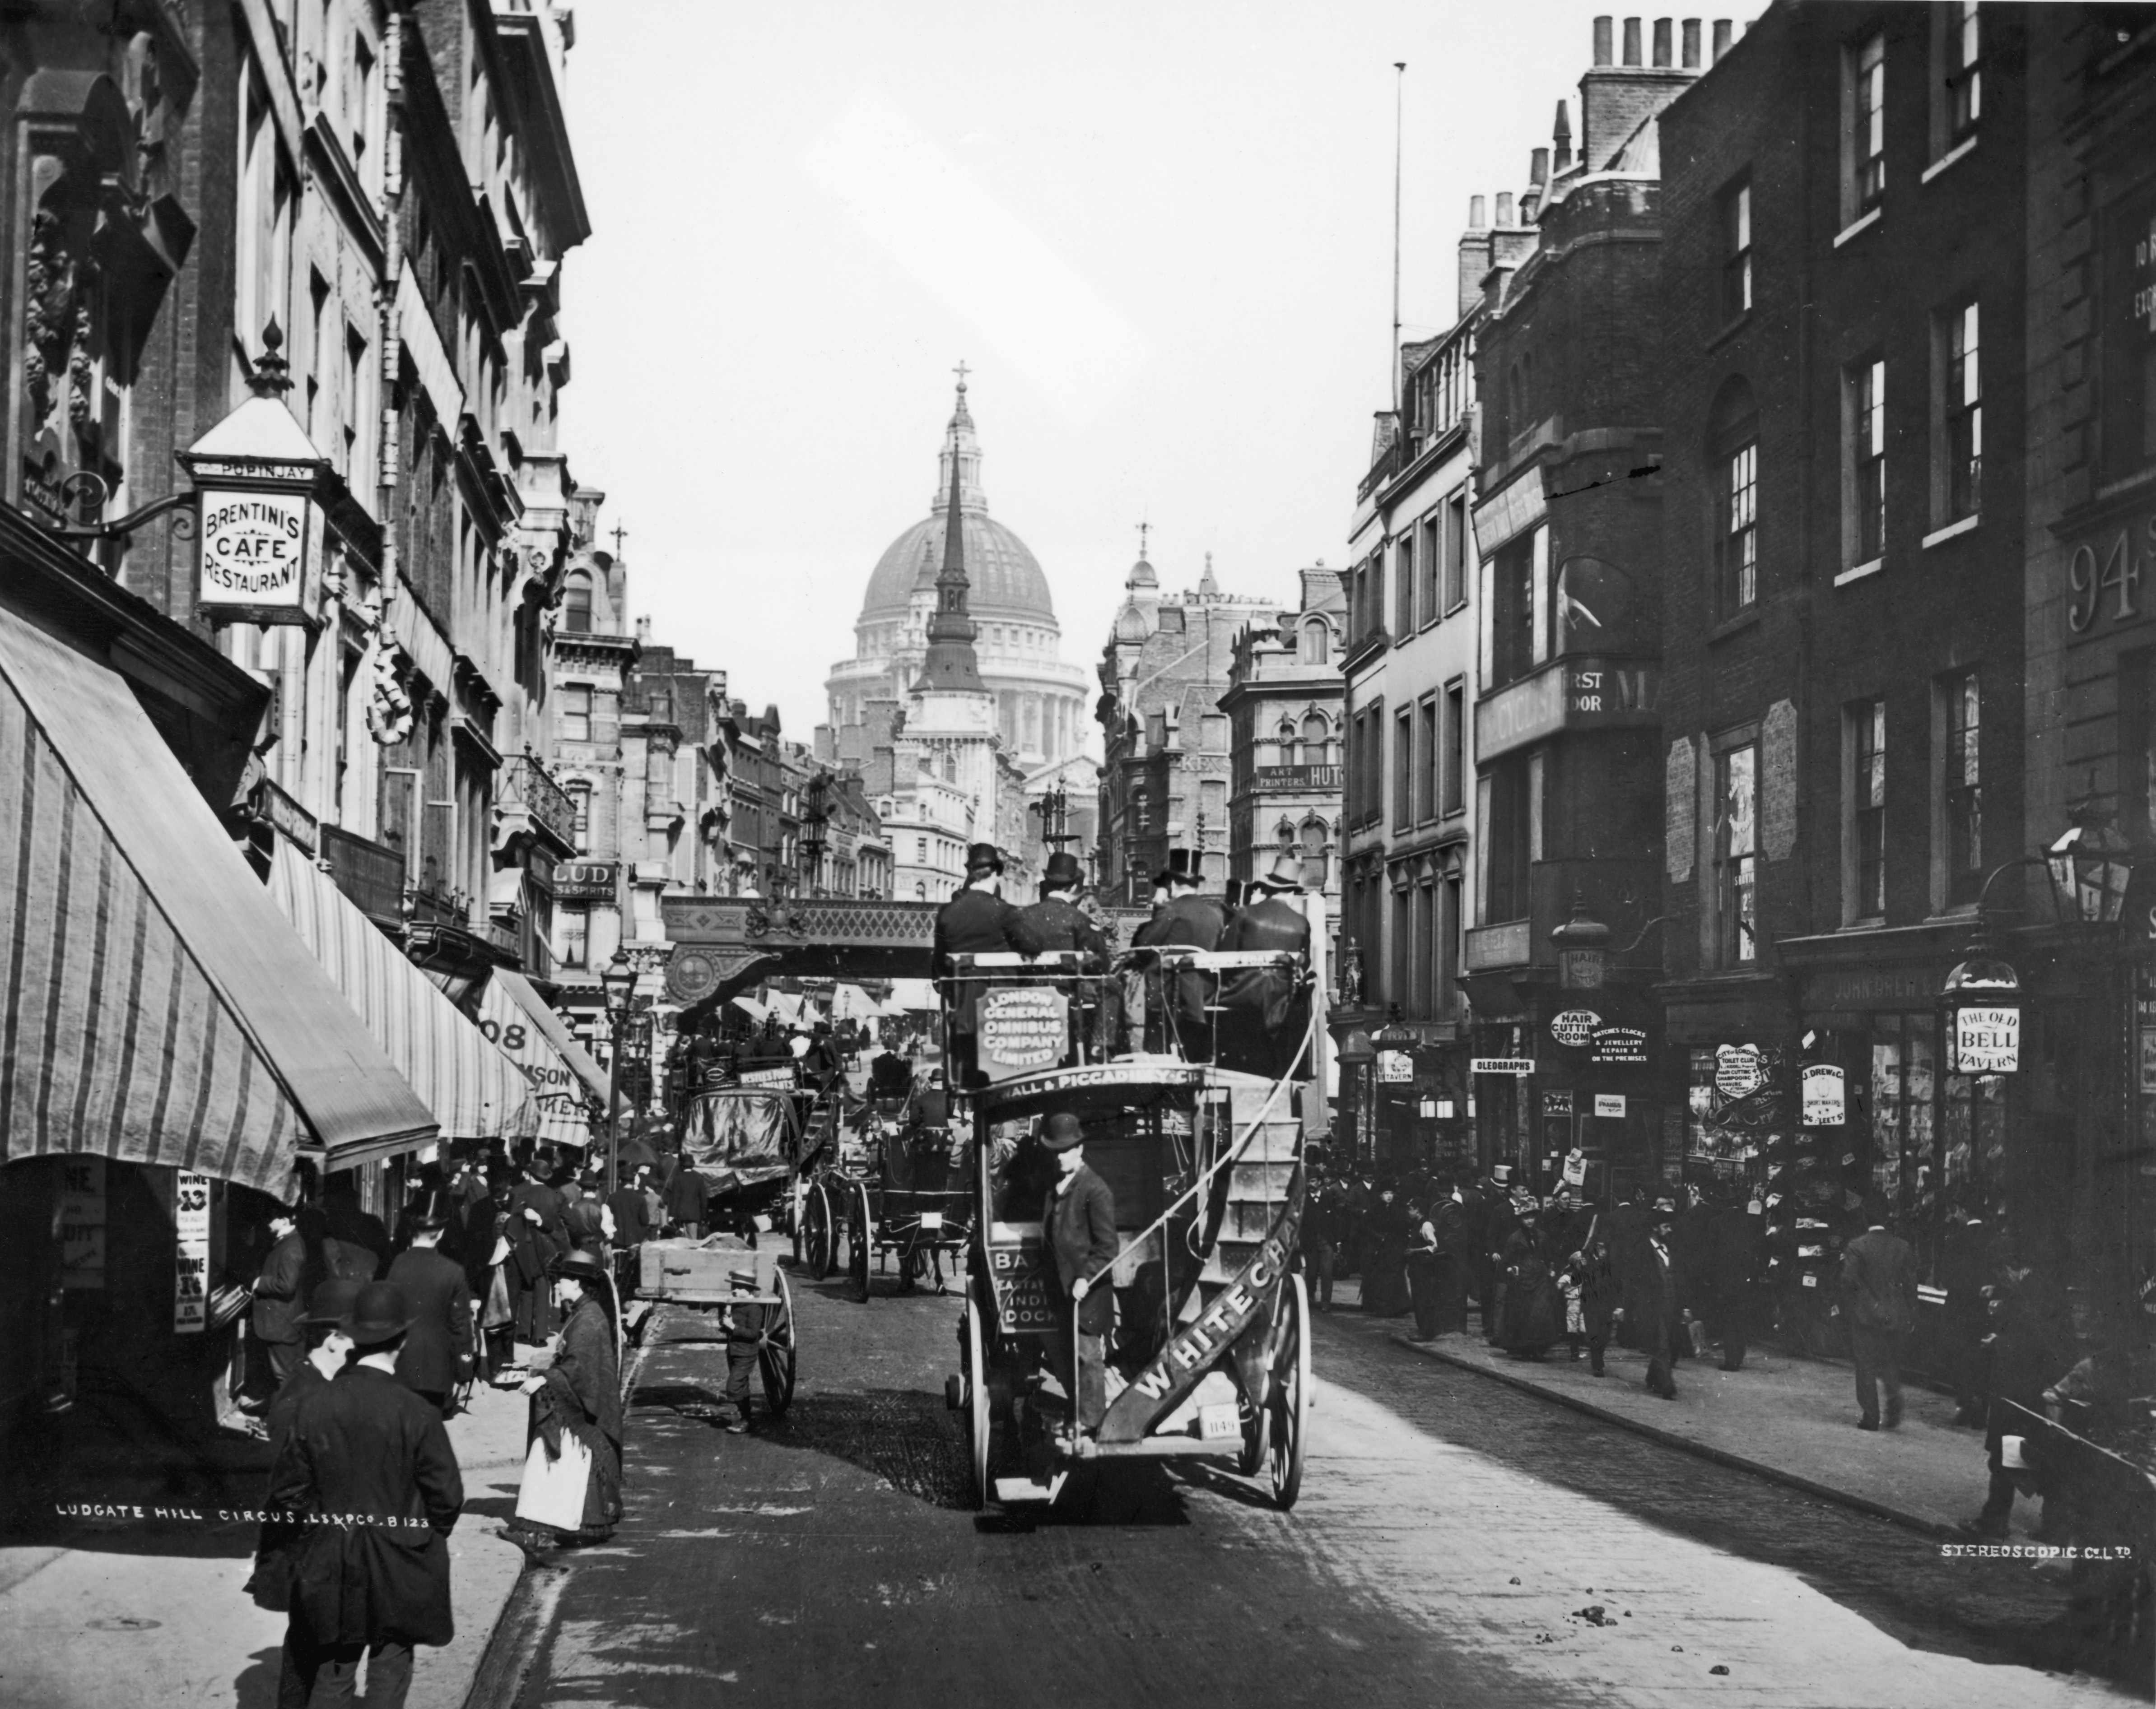 A bus makes its way down Fleet Street towards Ludgate Hill Circus and St Paul's Cathedral, London, c1888. (Photo by London Stereoscopic Company/Hulton Archive/Getty Images)